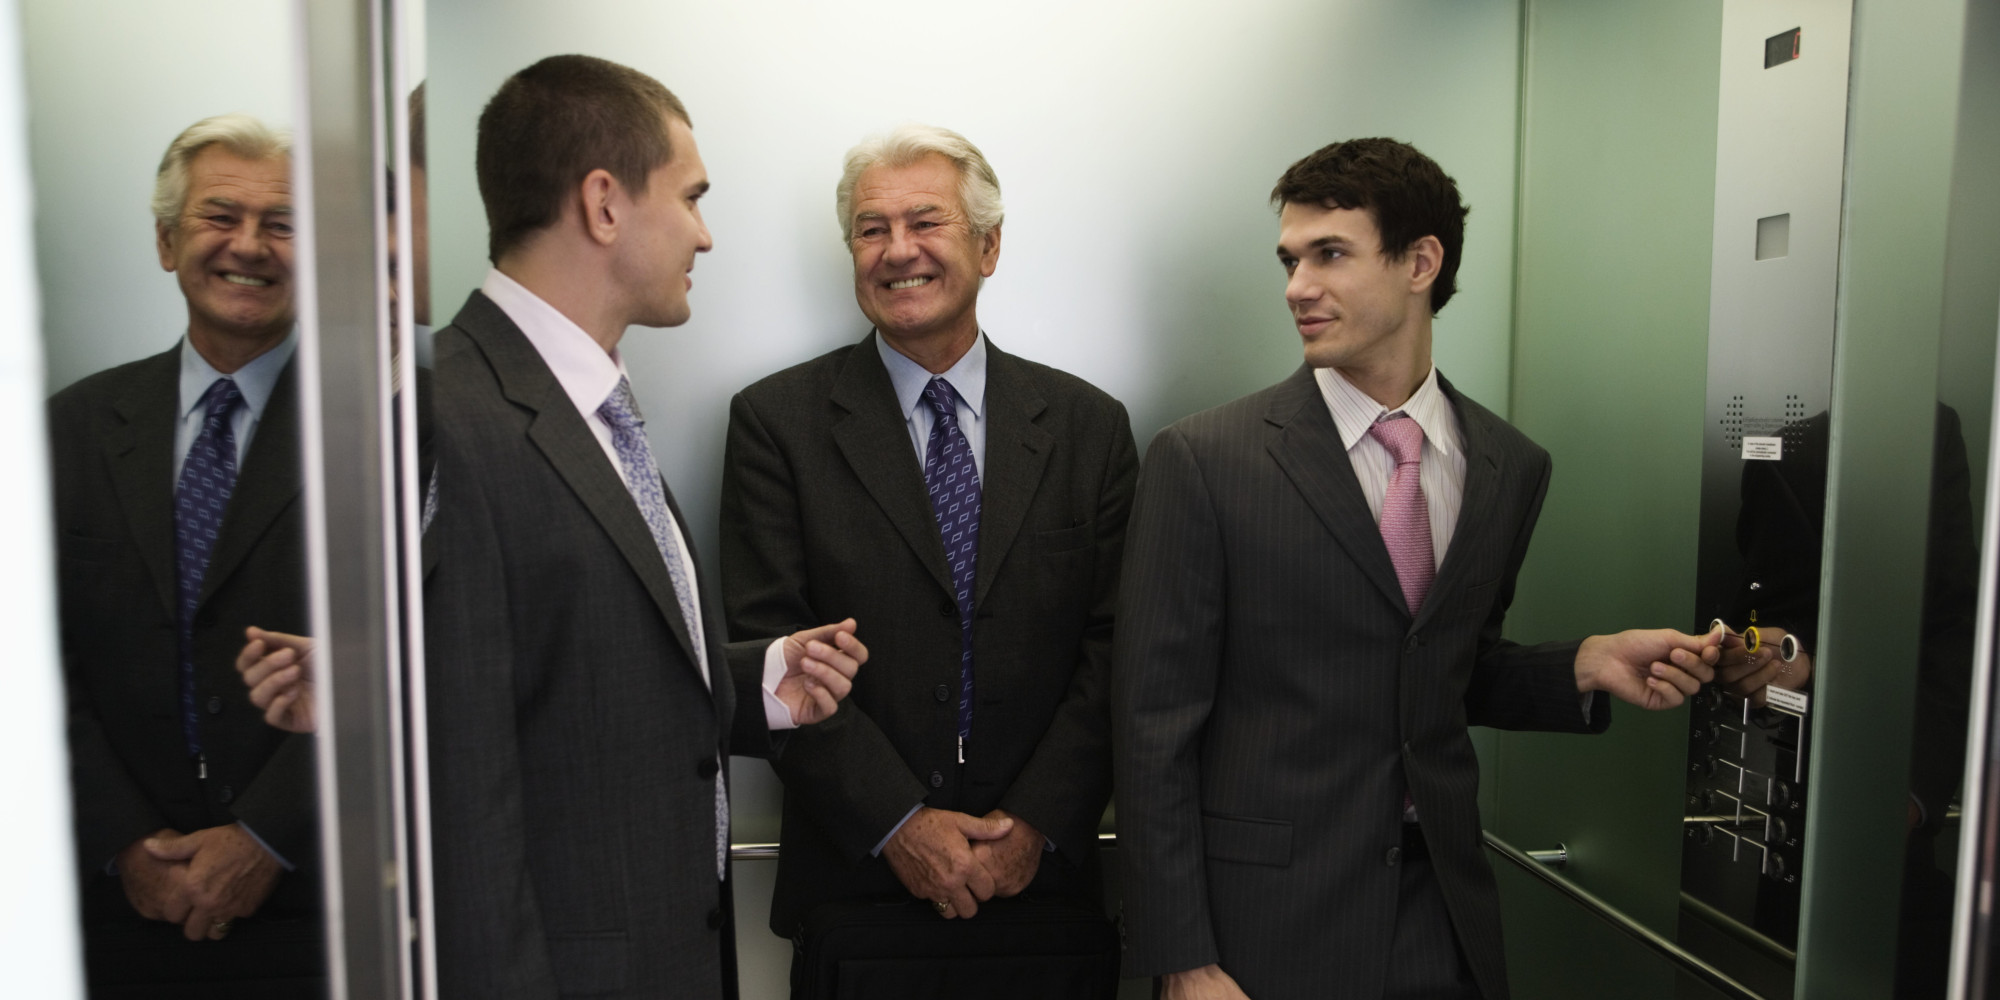 tips for crafting an effective elevator pitch the huffington post